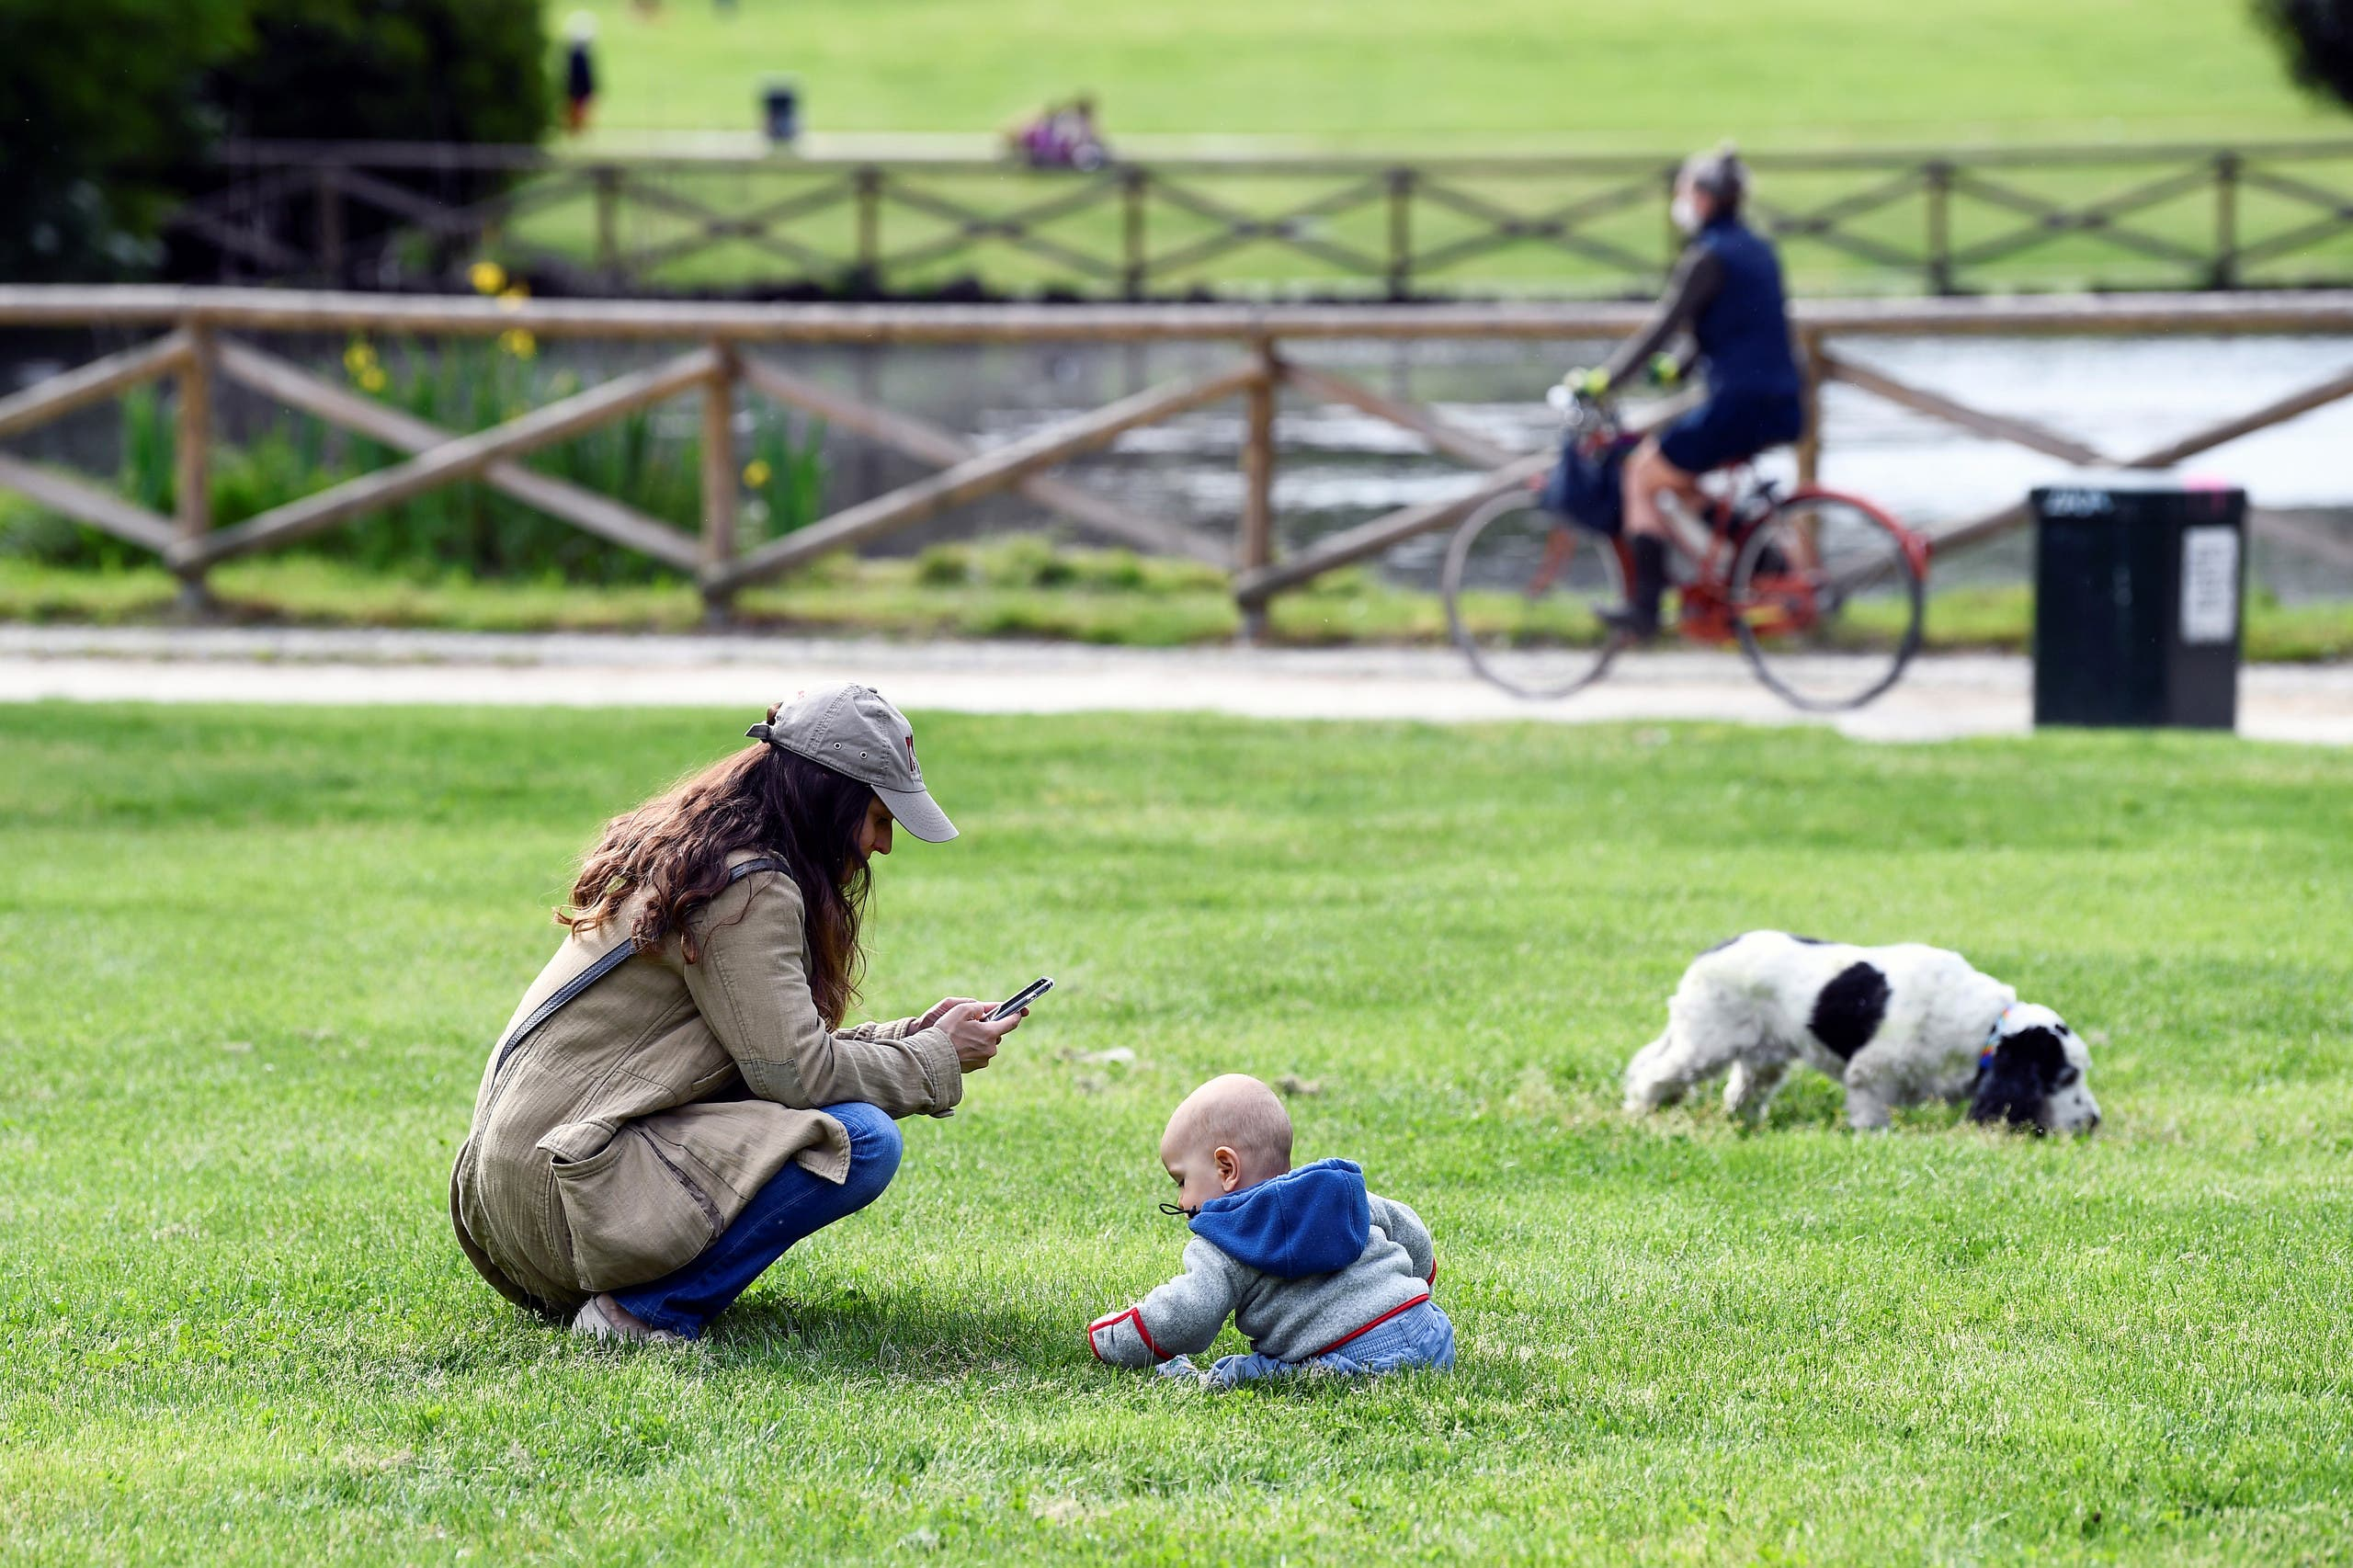 A woman uses her mobile phone at the Sempione park next to a baby, after parks reopen as Italy begins a staged end to a nationwide lockdown. (Reuters)